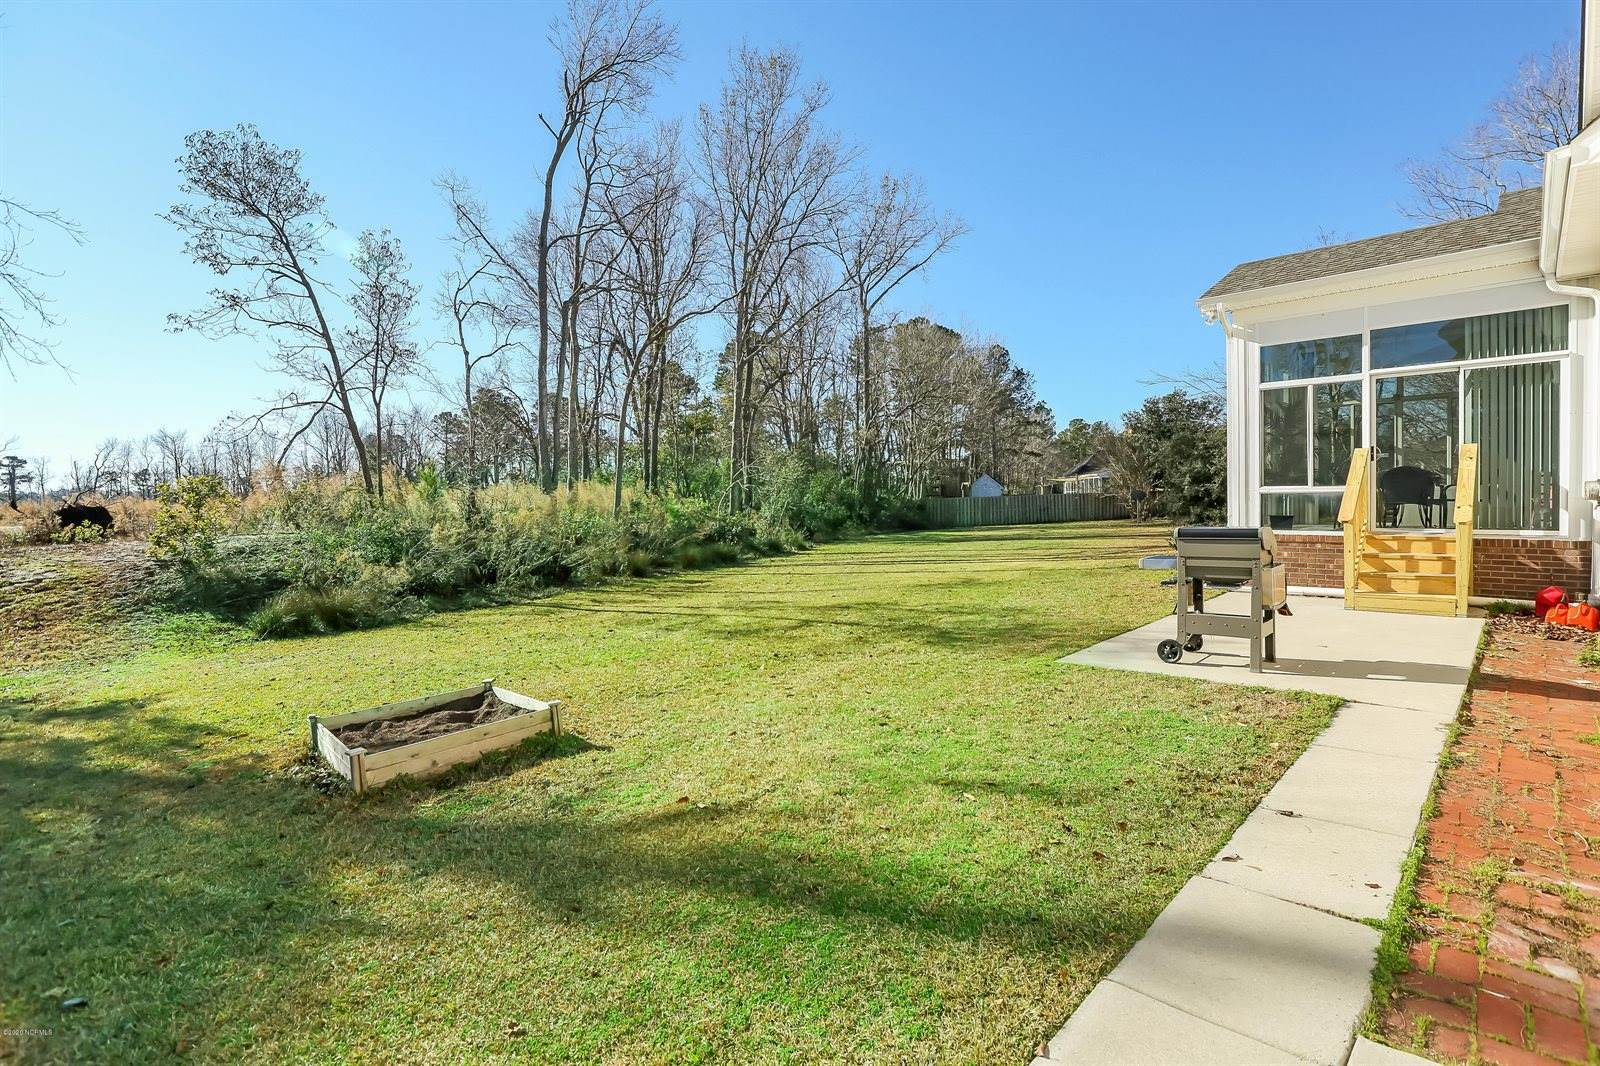 2805 John Yeamen Road, Wilmington, NC 28405